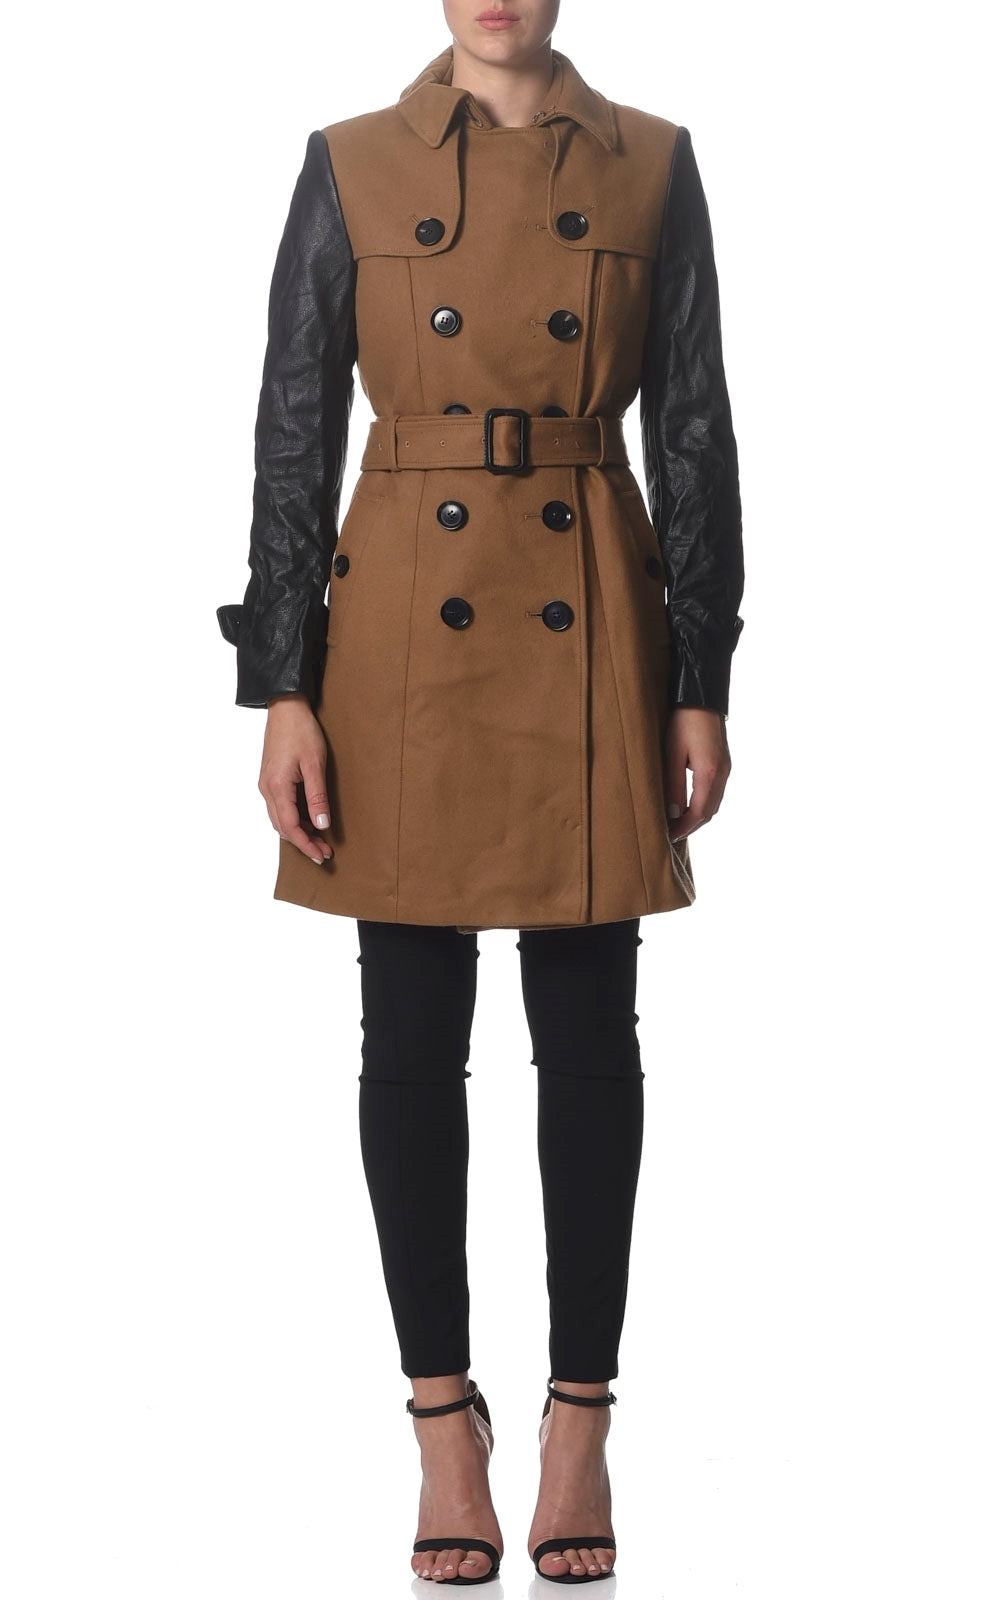 Joy Wool Trench Coat With Contrast Leather Sleeves